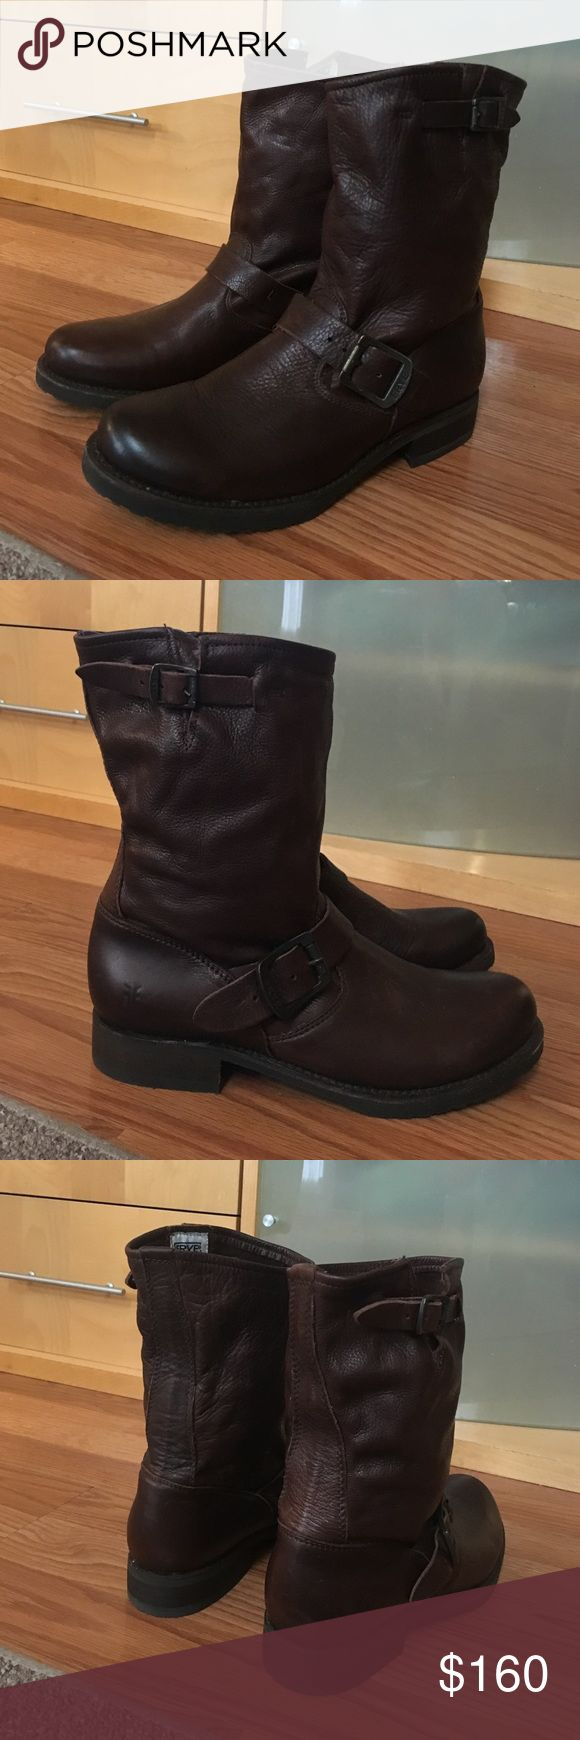 """FRYE Veronica Slouch Shortie Brown Boots 7.5 Hello, this is a fabulous pair of women's FRYE boots. They are in great condition! Soft, supple leather shapes the slouchable shaft of a pull-on boot with a utilitarian vibe. Size 7.5M. Style - Veronica Shortie. Color - Dark Brown. 9"""" shaft height, 13"""" shaft circumference, 1"""" heel height. Please send me any questions, thanks! Frye Shoes Ankle Boots & Booties"""